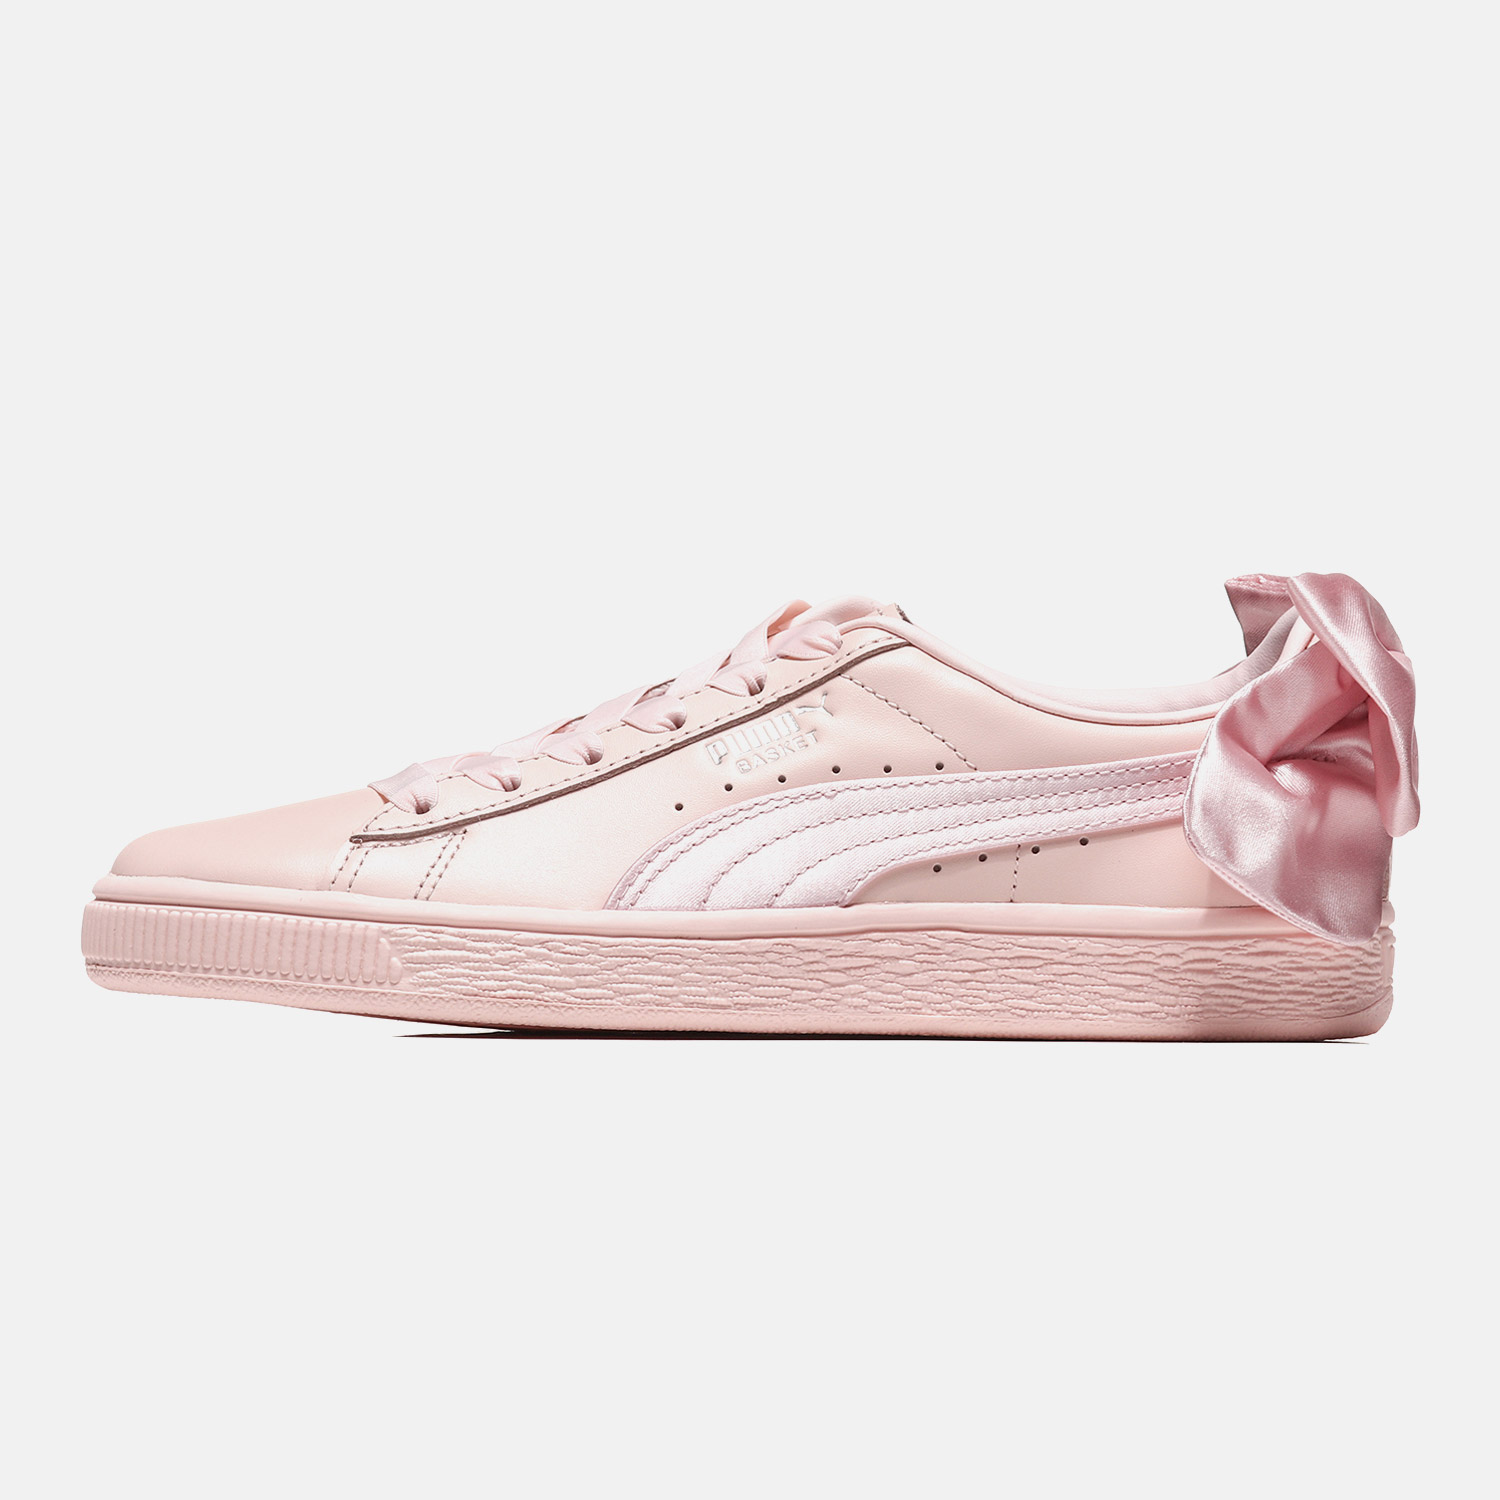 70f89f10f12fa3 puma cherry pink board shoes women s white shoes SUEDE Bow Bow Puma shoes  female gulina with